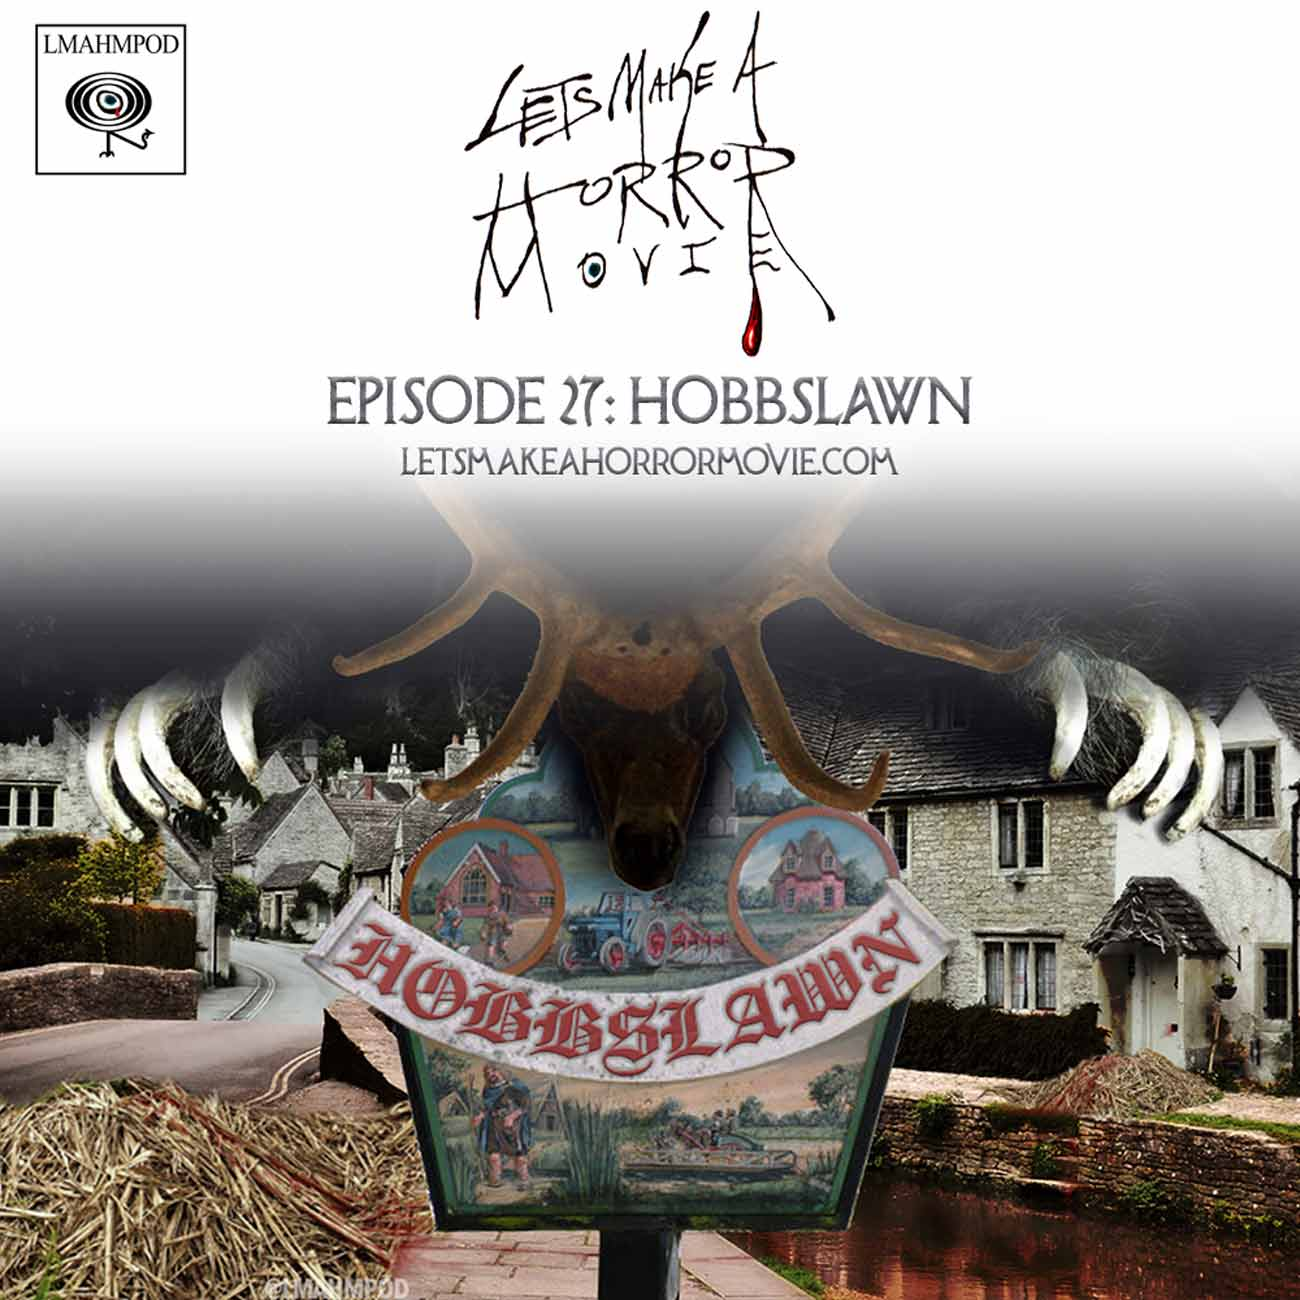 Episode 27: Hobbslawn (aka 'Hot Episode')